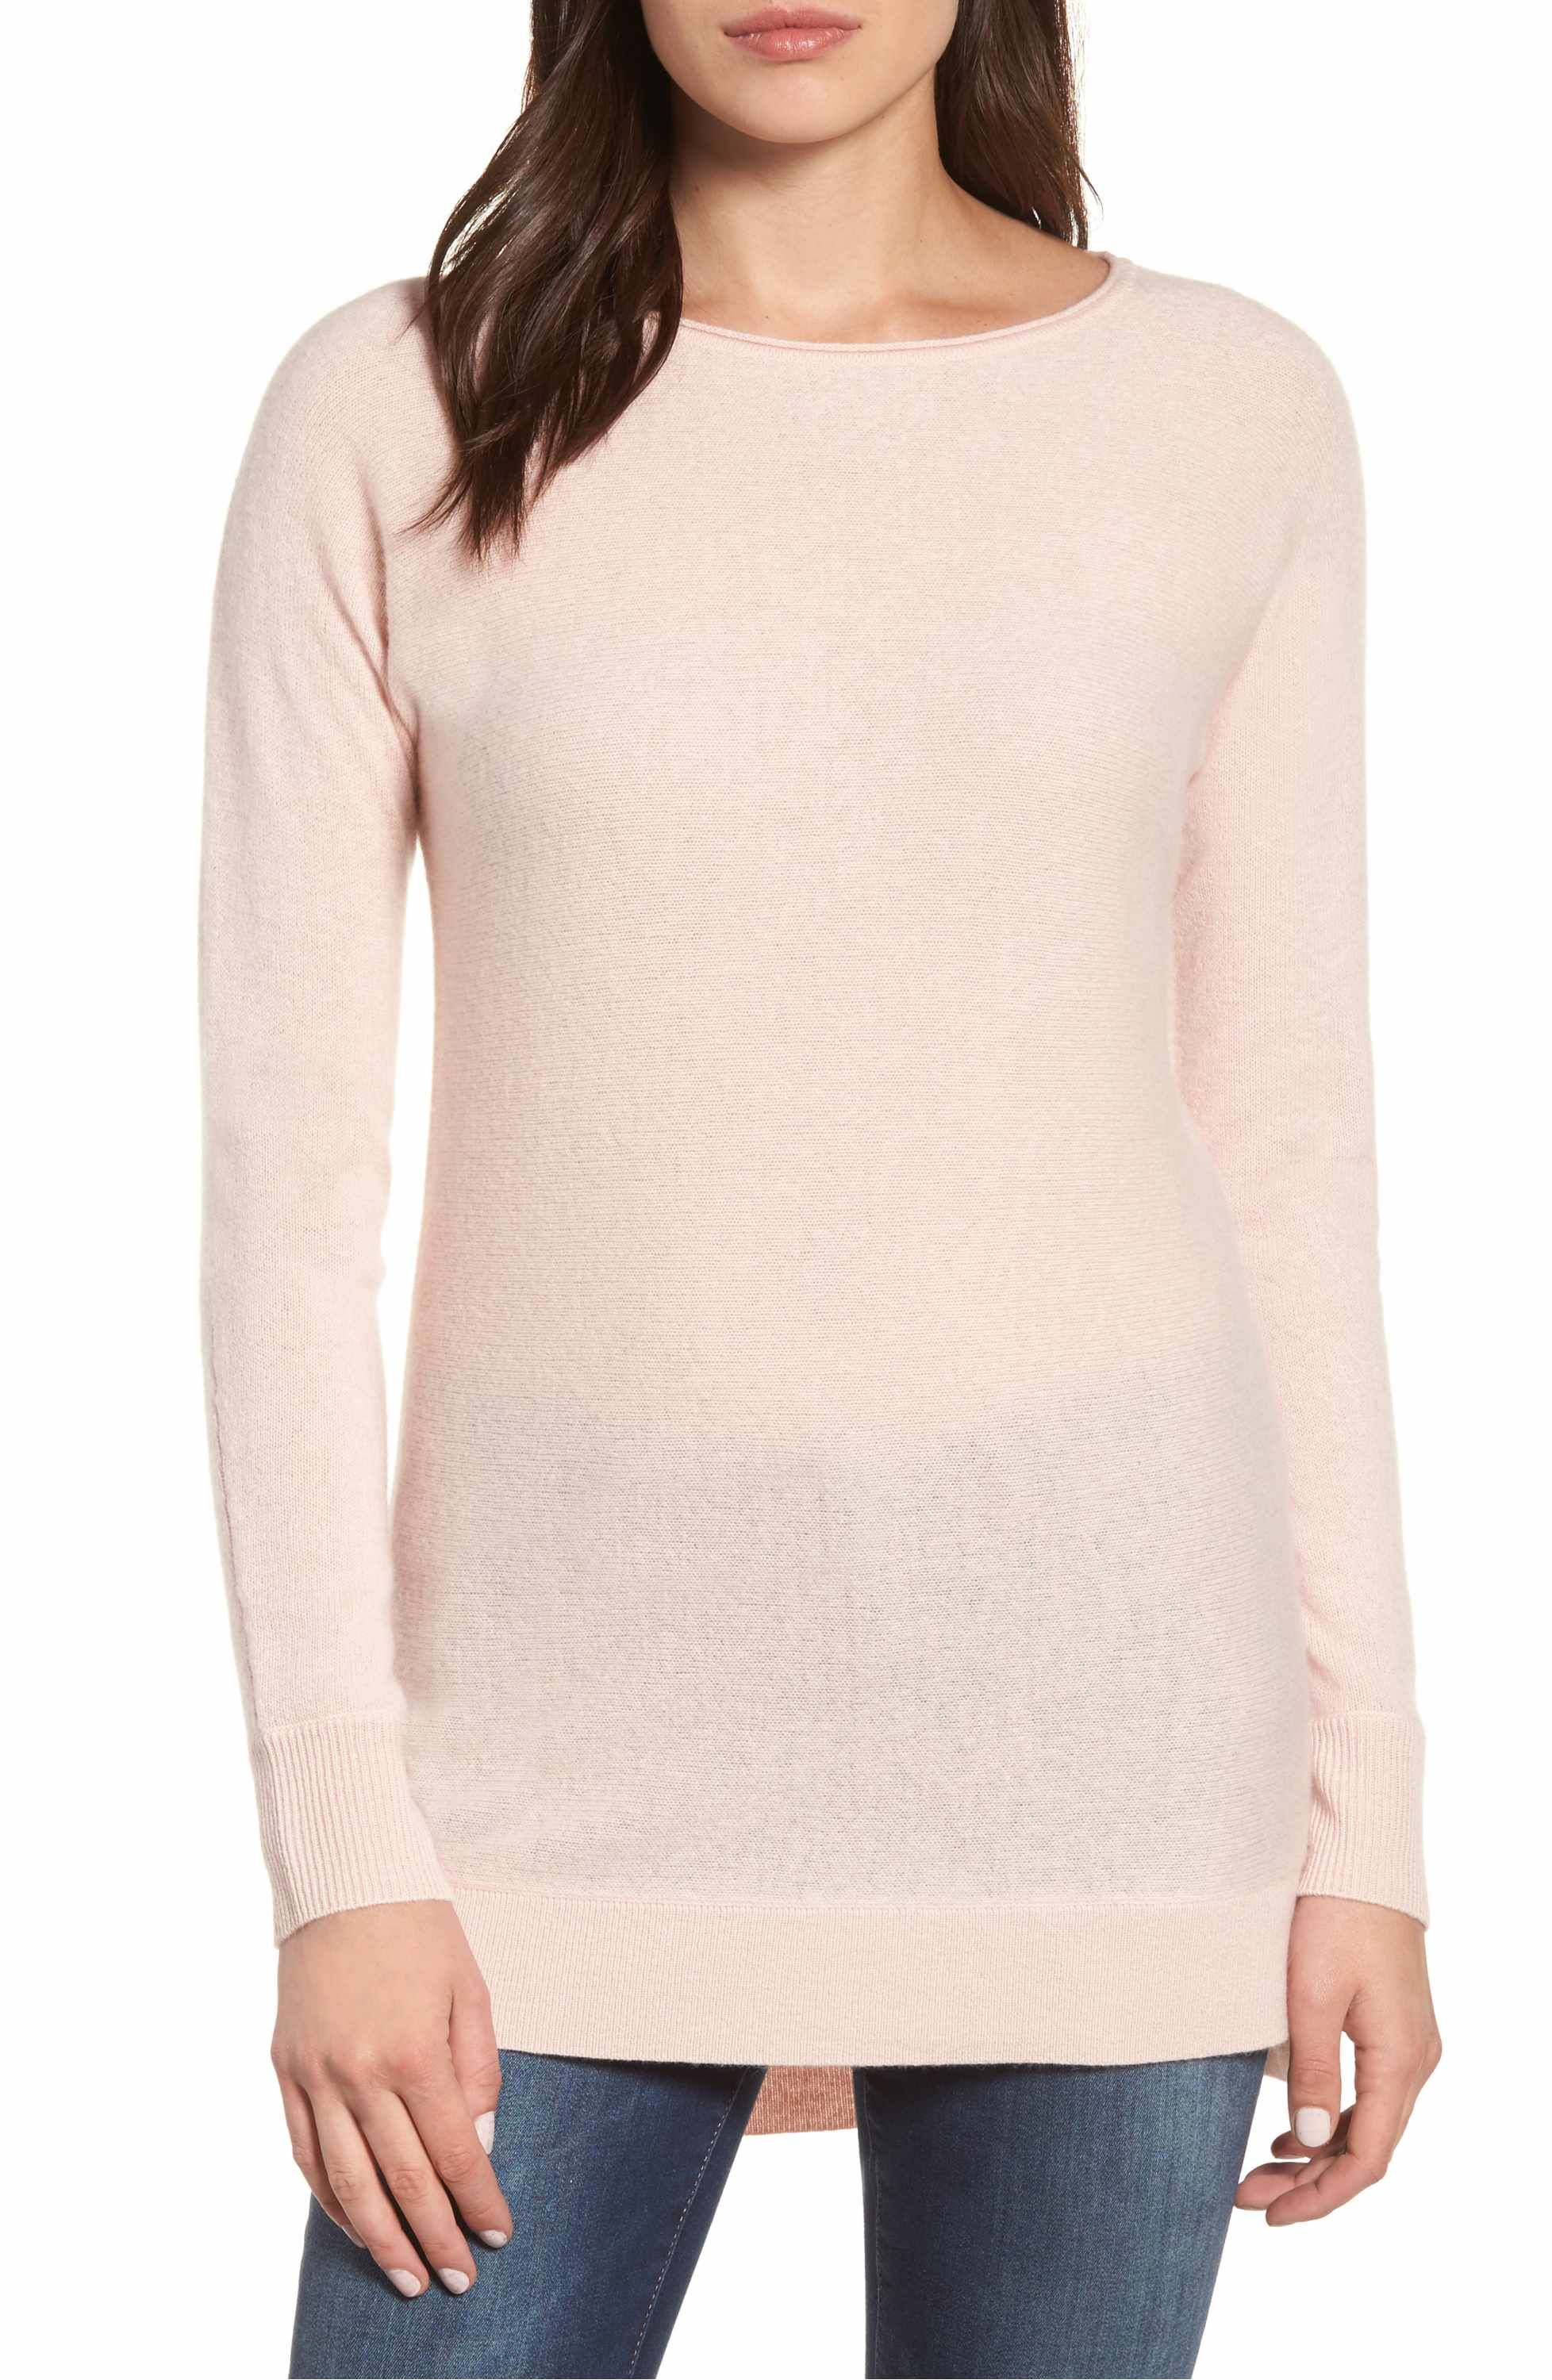 High/Low Wool & Cashmere Tunic Sweater | Tunic sweater, High low ...